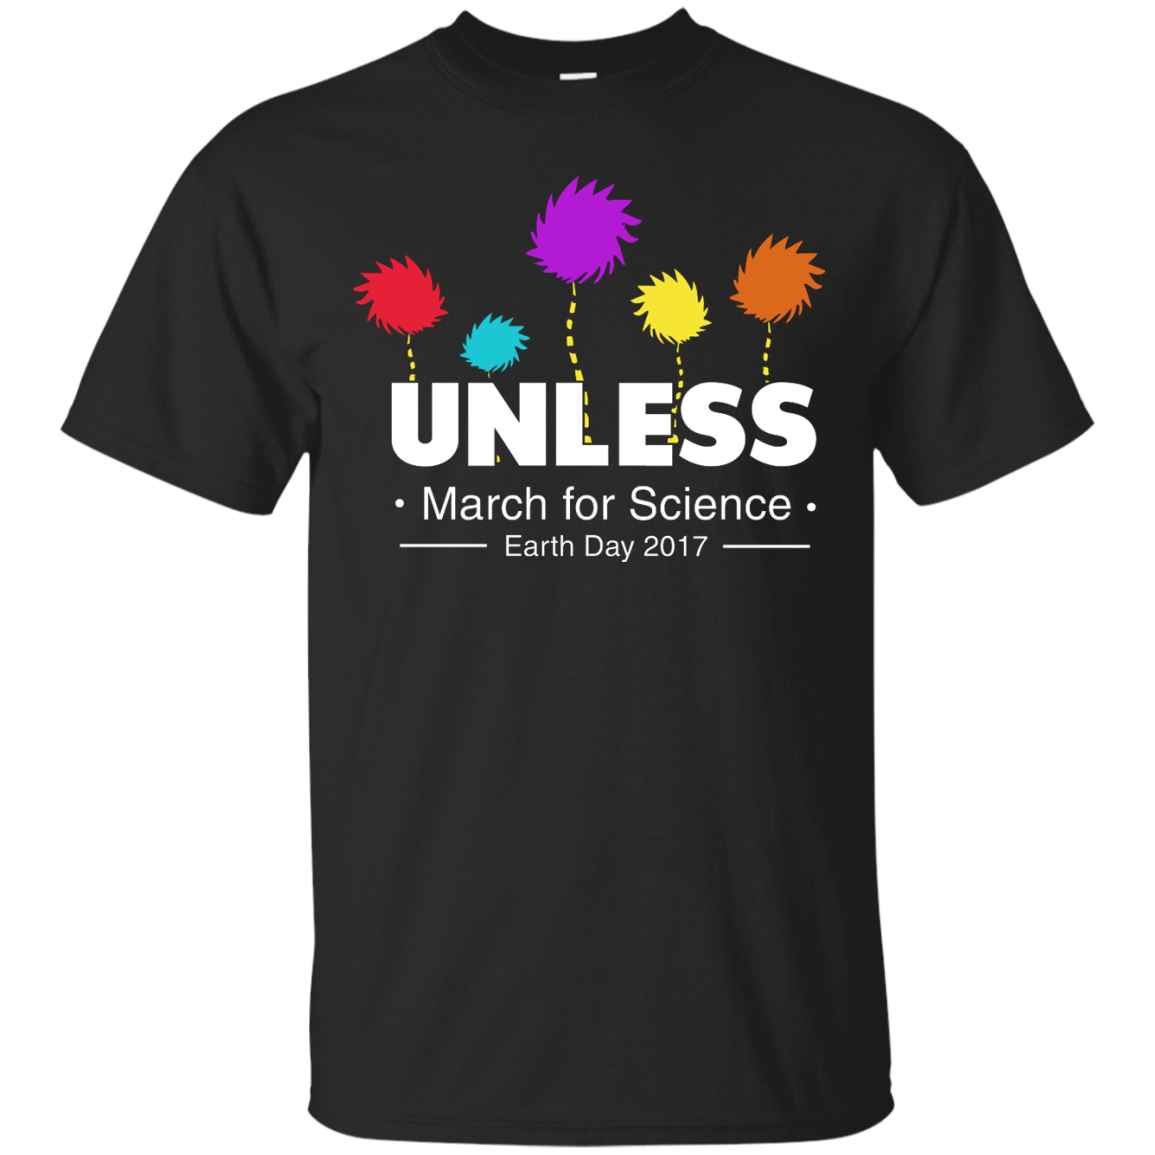 imagepx Tom Hanks: Unless, March For Science 2017 T Shirt